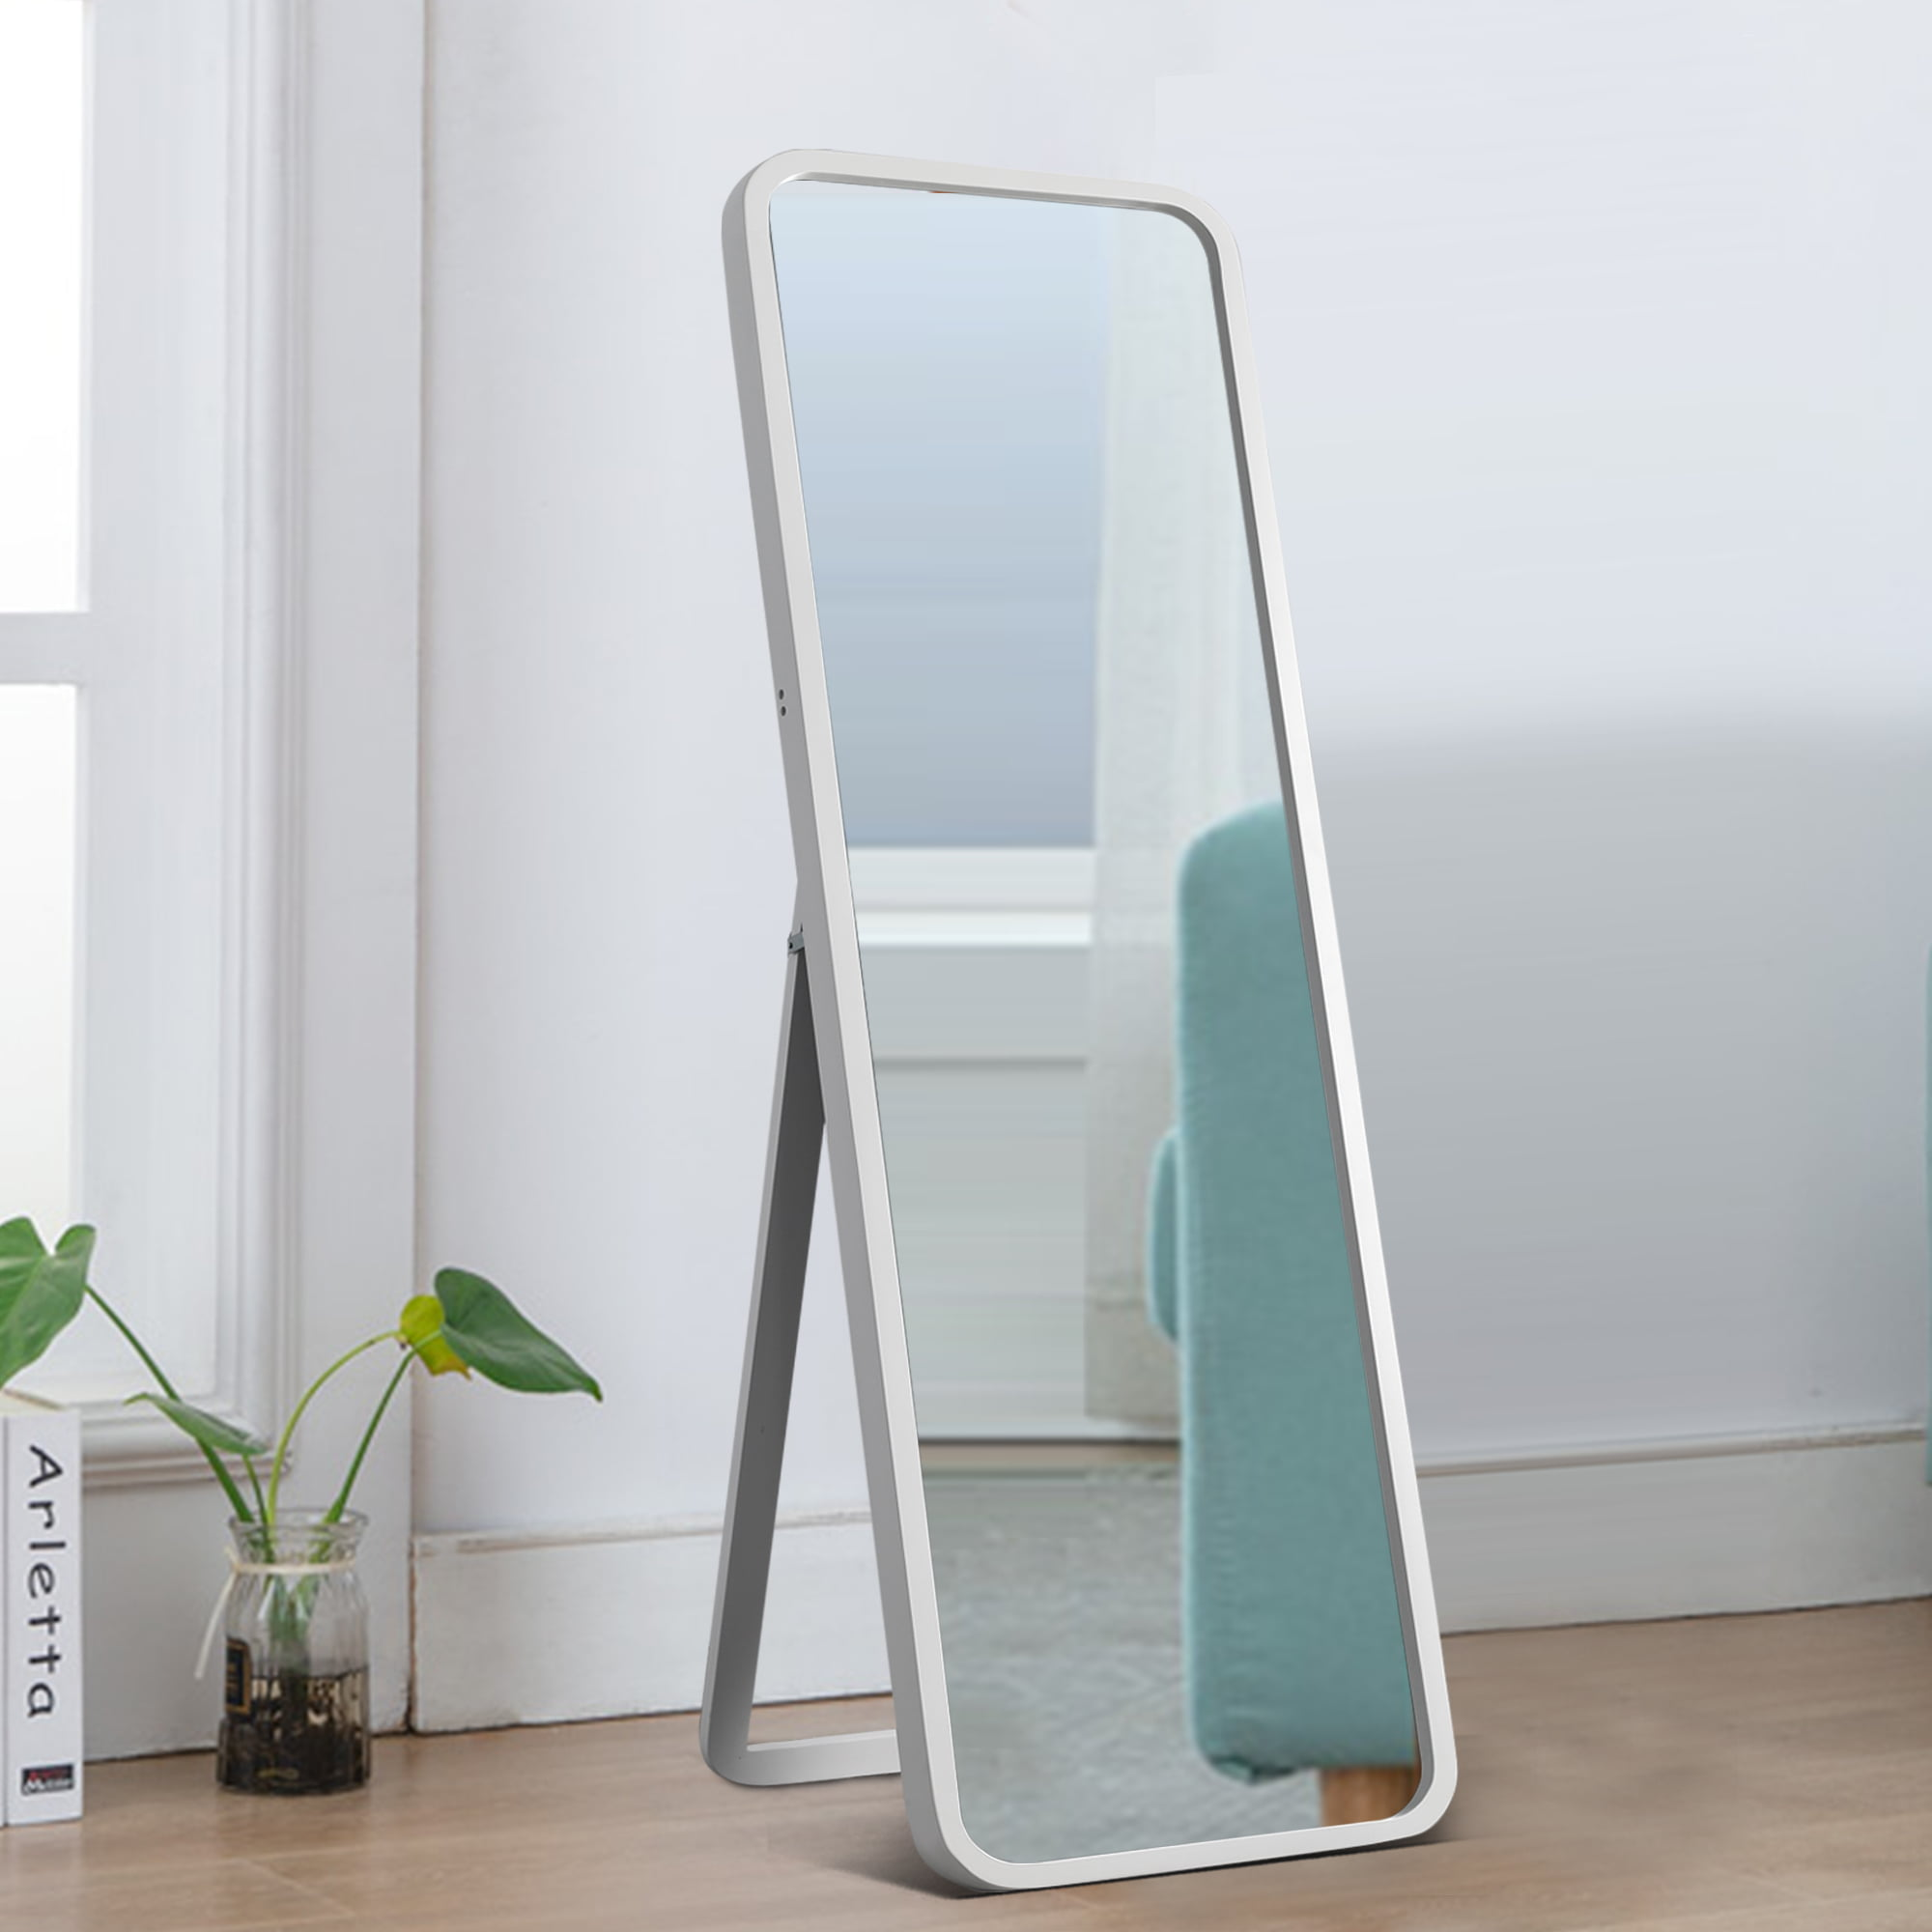 Neutype Full Length Mirror With Standing Holder Floor Mirror Large Wall Mounted Mirror Bedroom Mirror Dressing Mirror Wood Frame White 55 X 16 Walmart Com Walmart Com